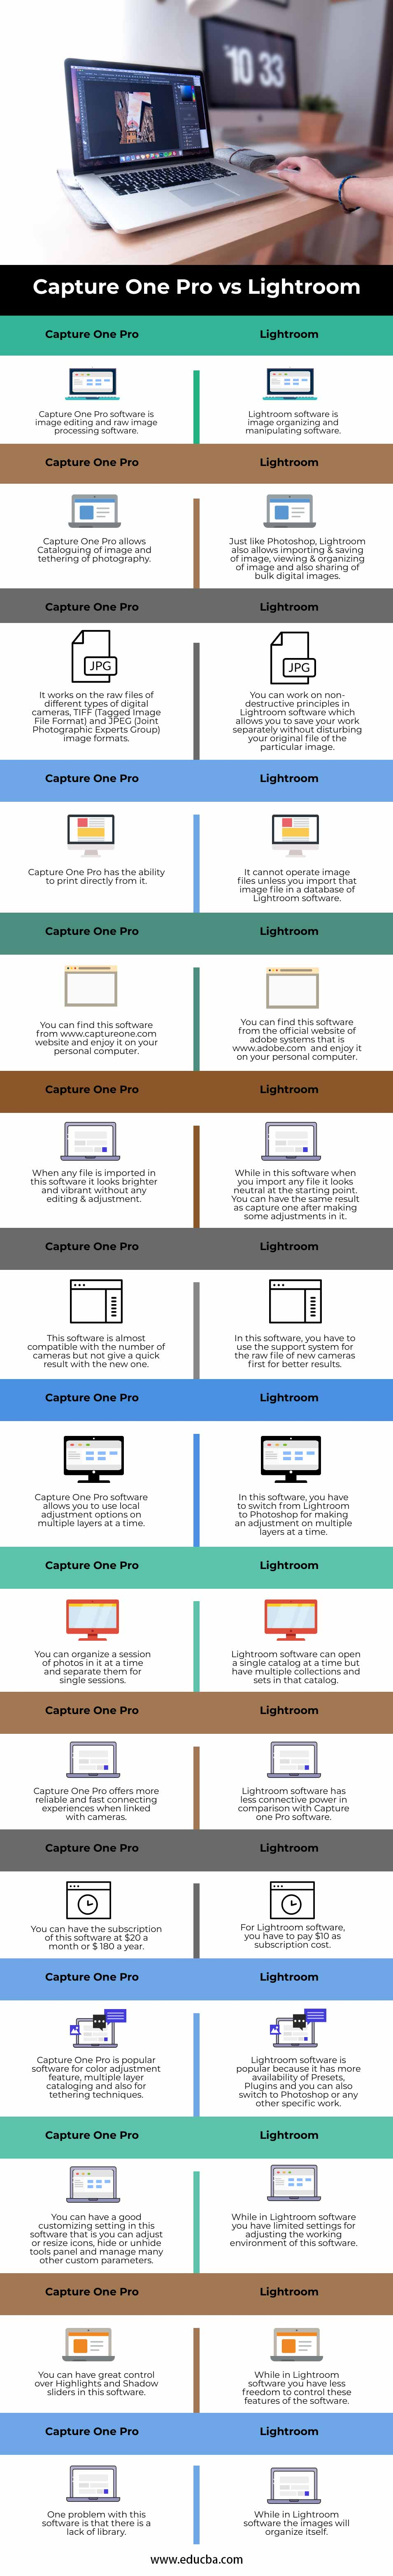 Capture One Pro vs Lightroom info